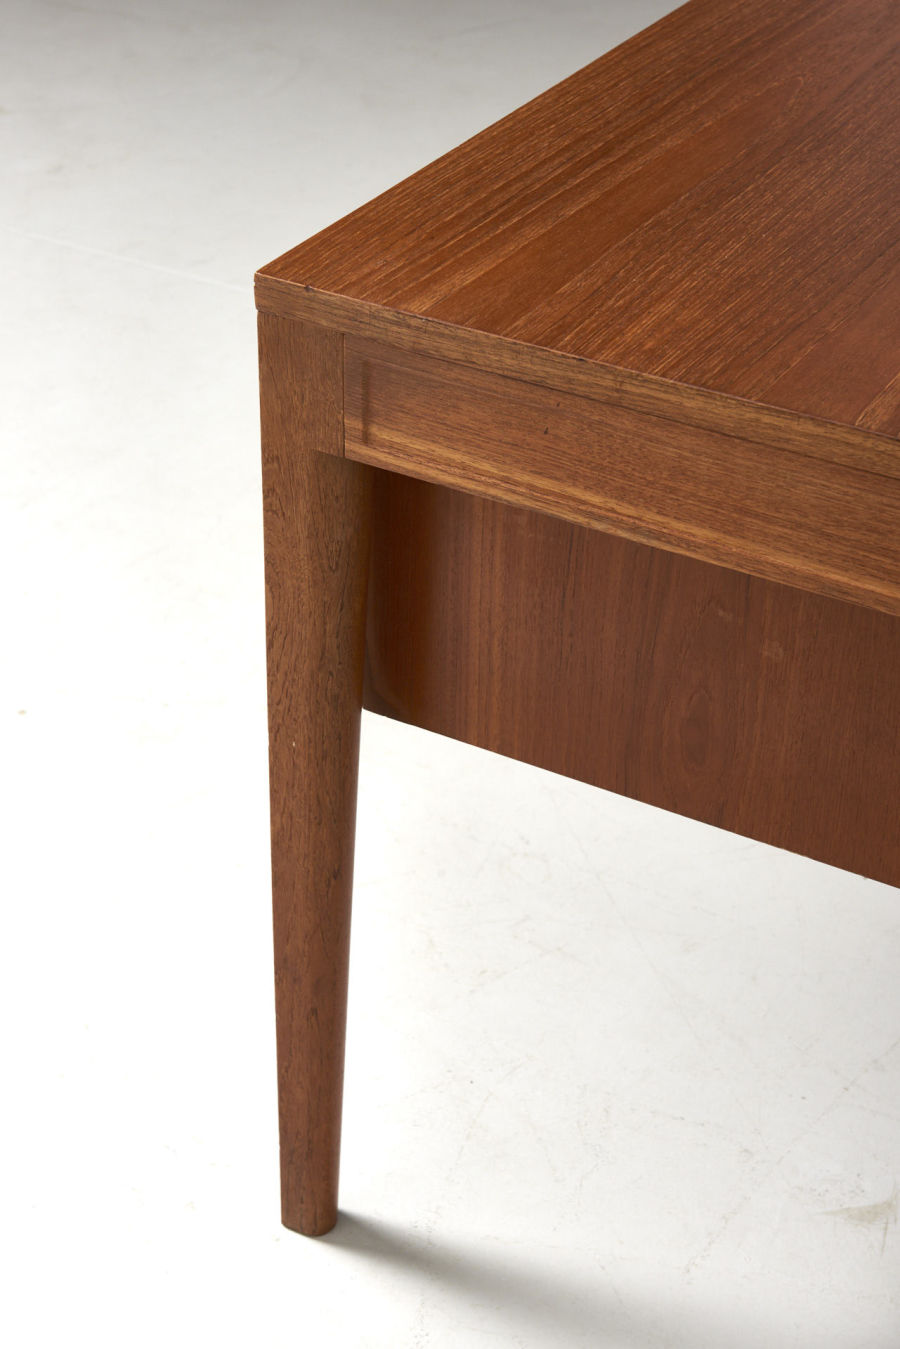 modestfurniture-vintage-2181-finn-juhl-diplomat-writing-desk09